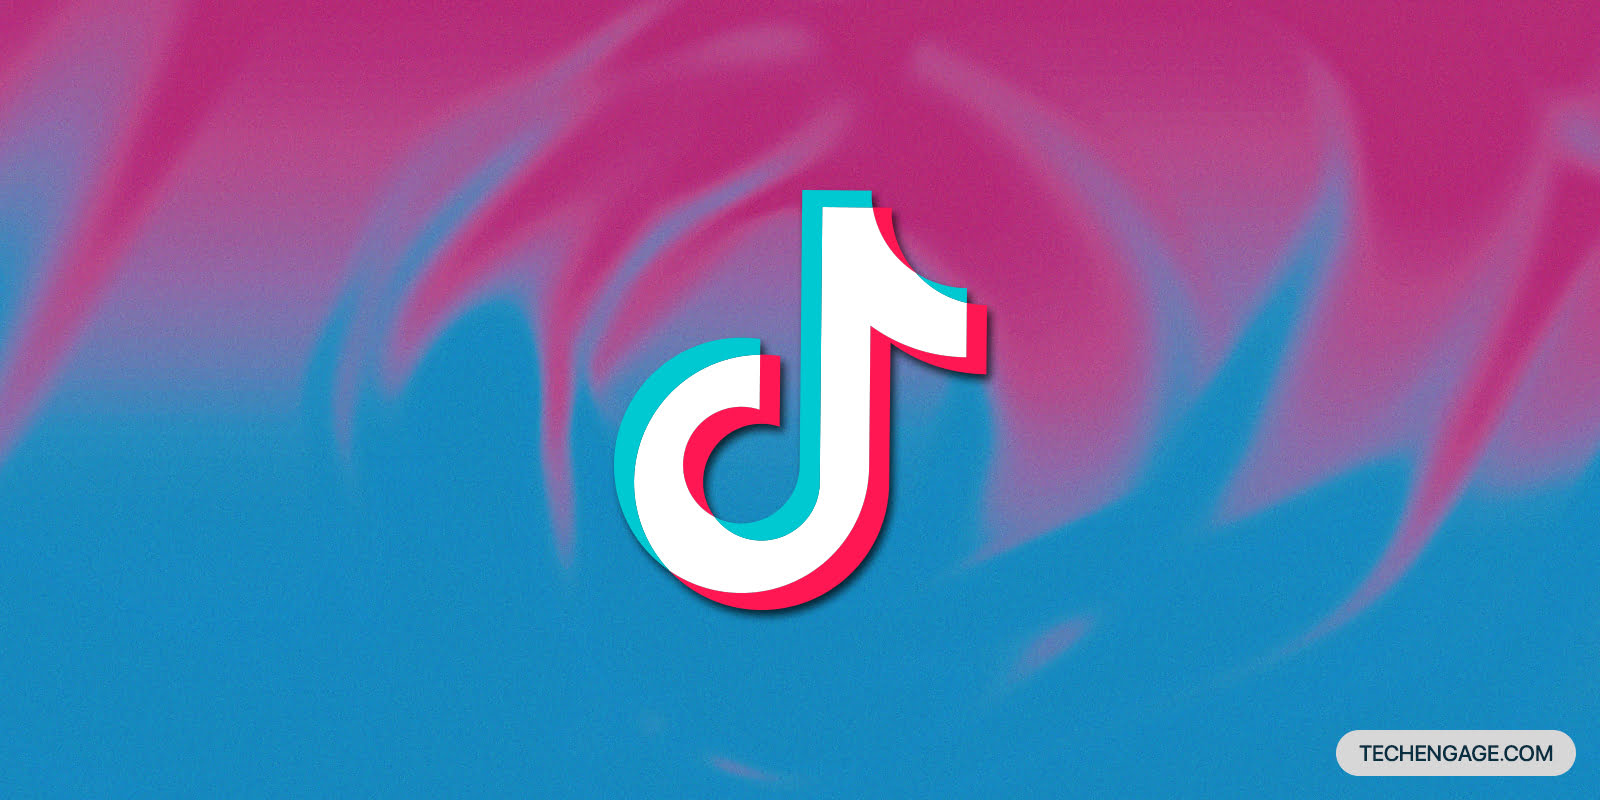 ByteDance begins selling TikTok's video AI to other companies